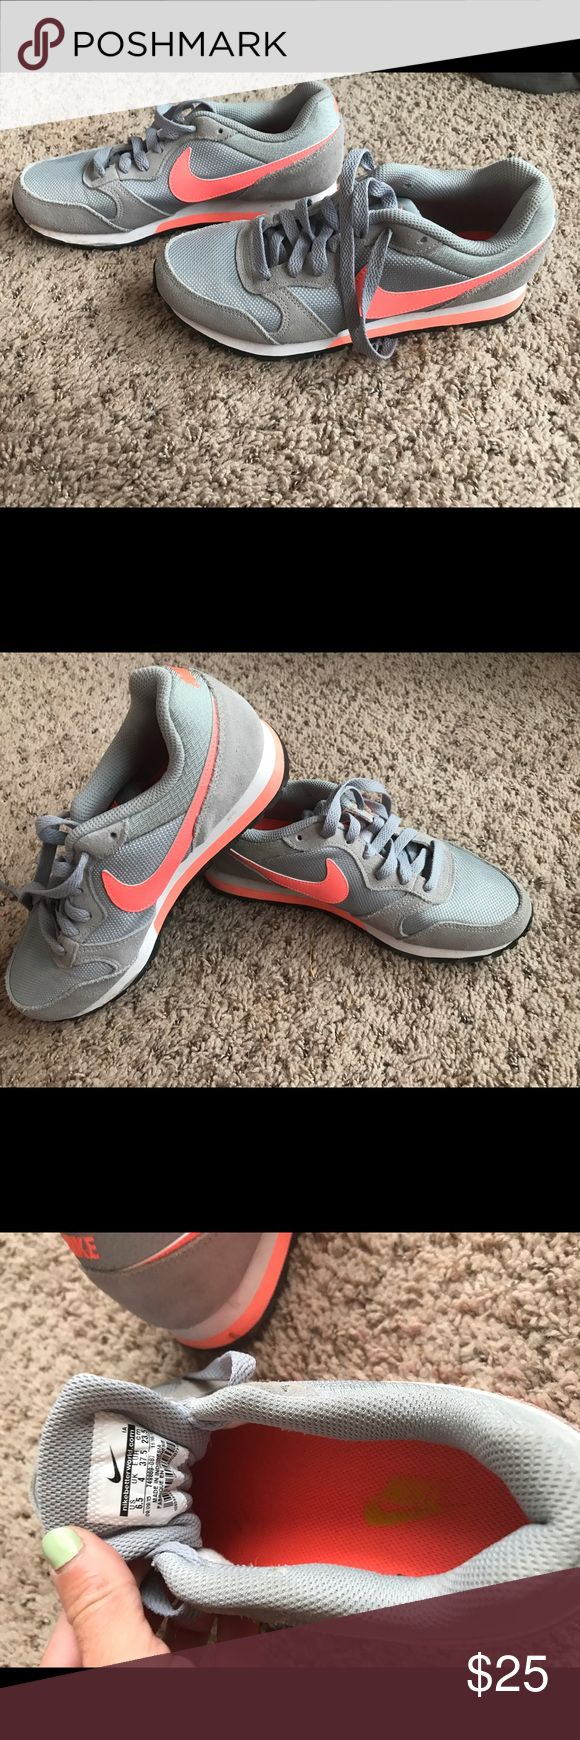 Ladies Nike running shoes Grey and salmon/pink swoop. Worn only to walk around Disney World one day!  Very comfortable- I just don't wear tennis shoes! Nike Shoes Athletic Shoes